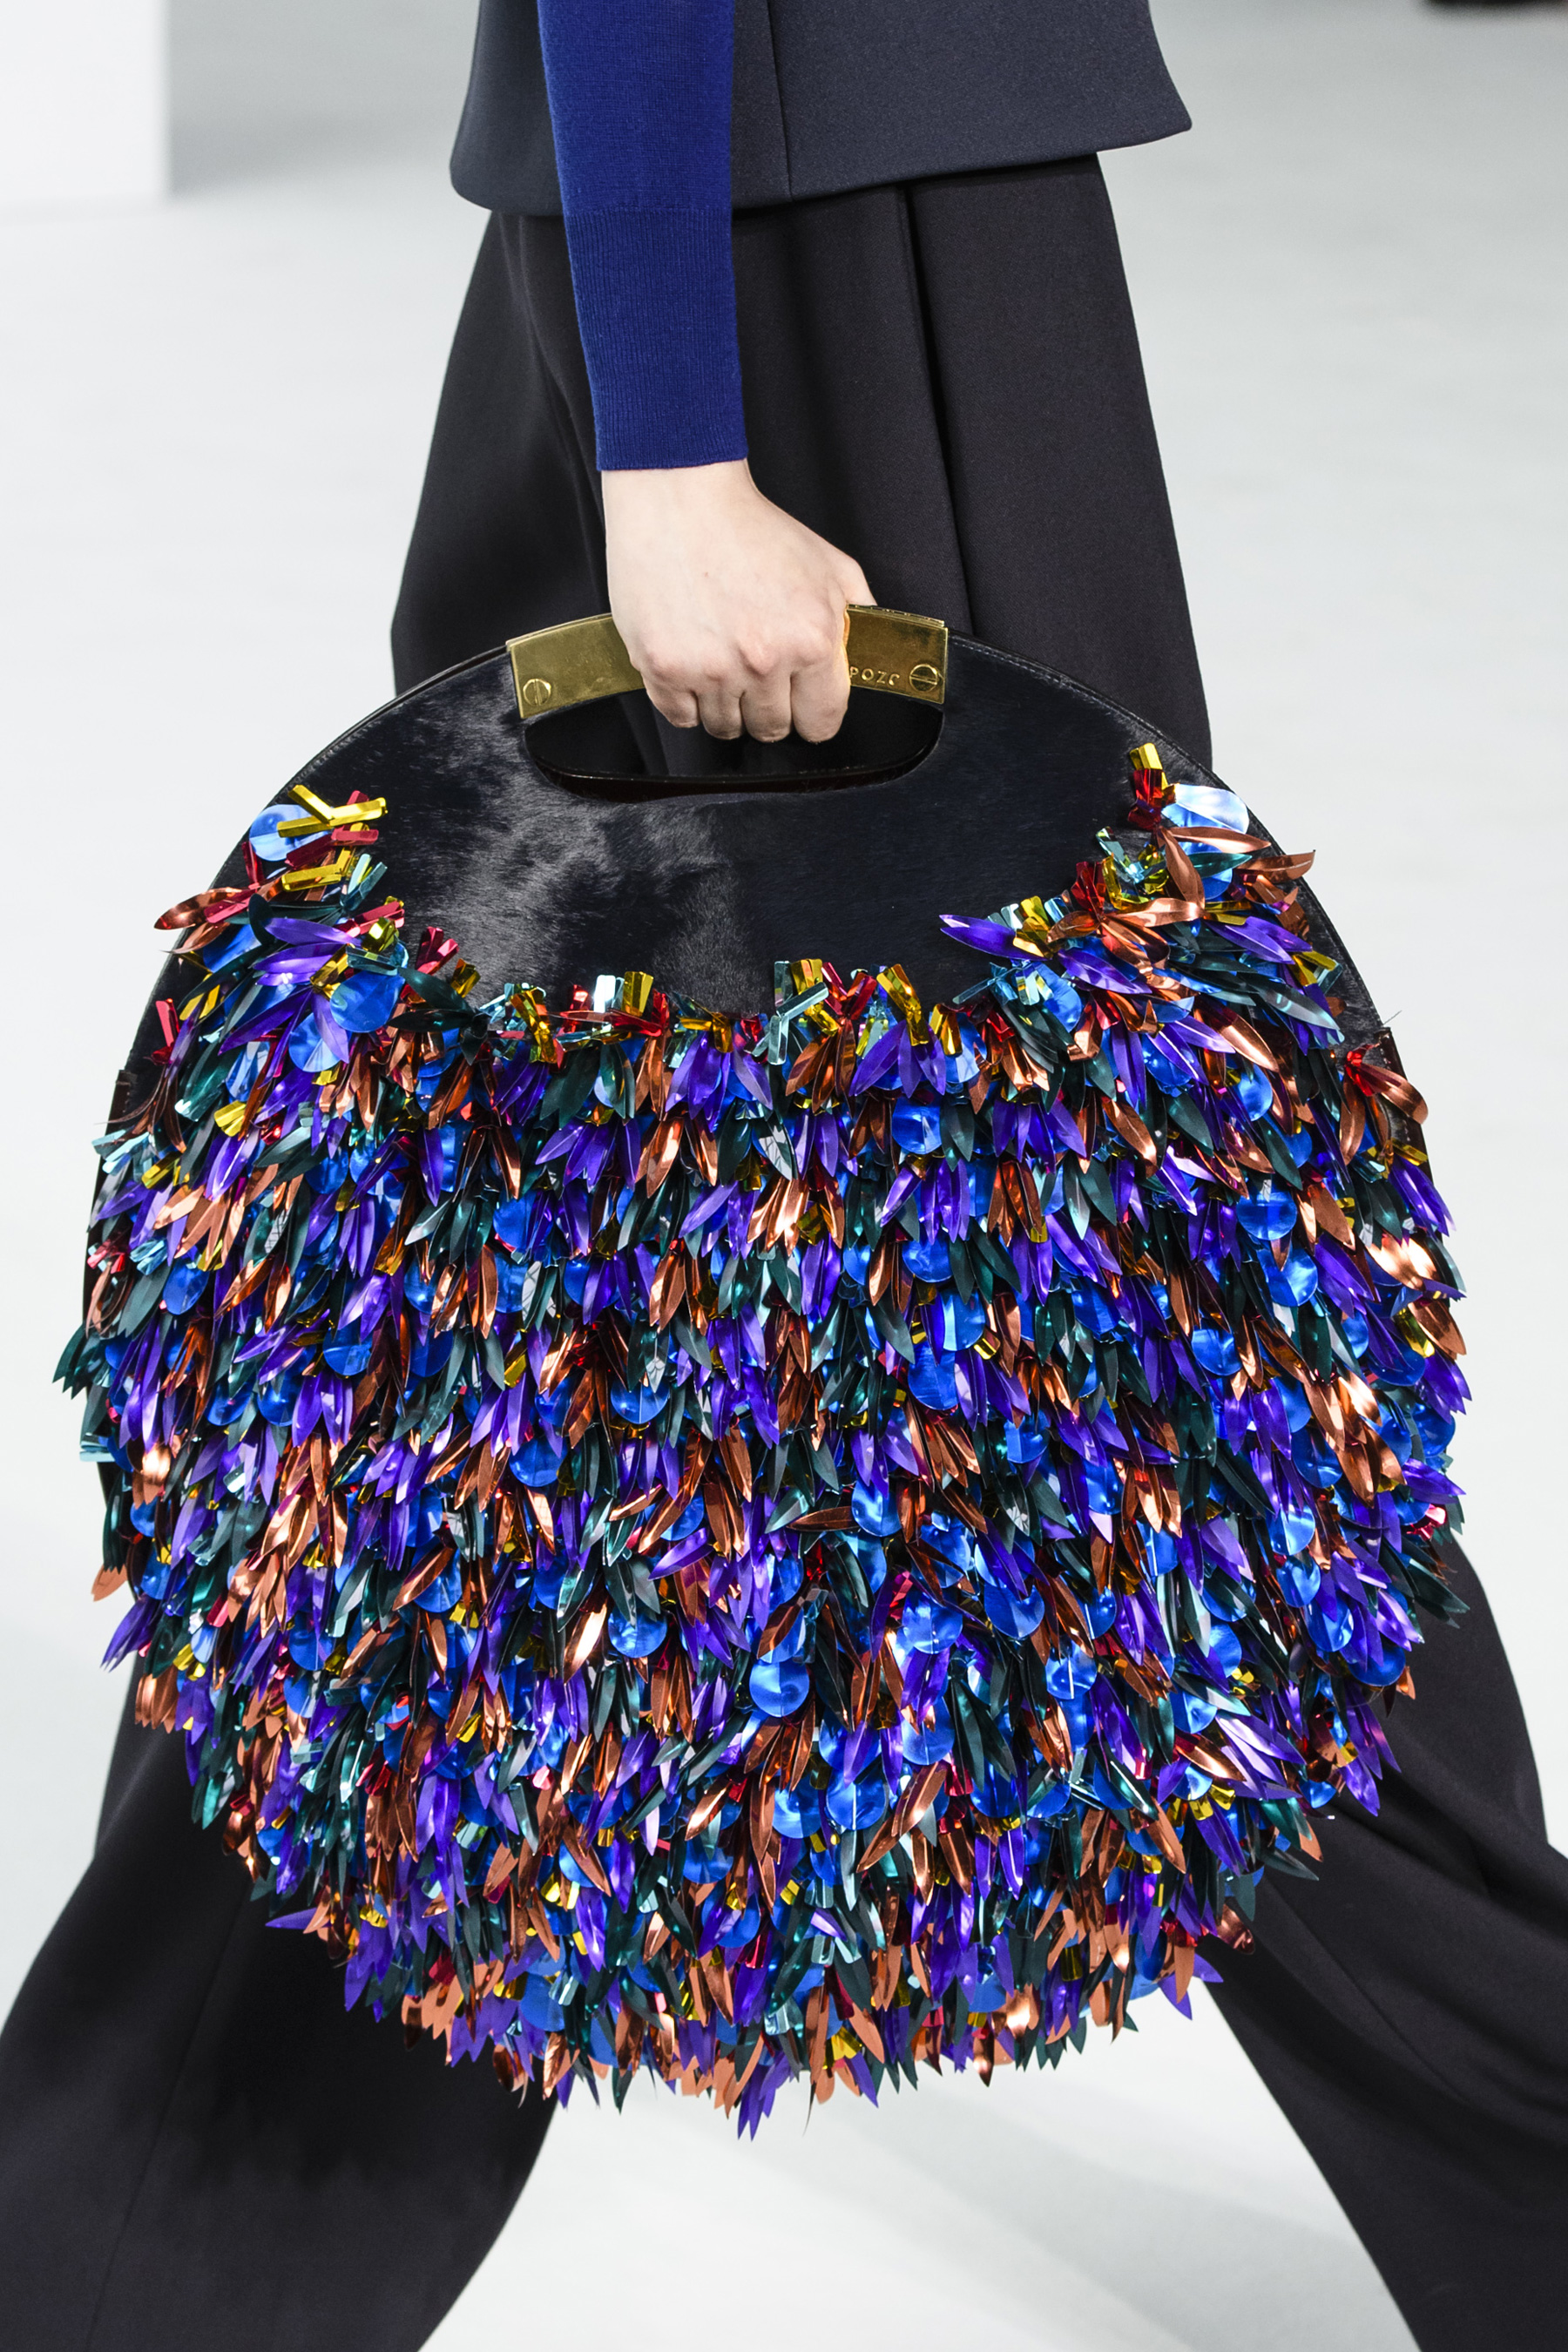 flur-magazine-best-bags-accessories-fashion-weeks-delpozo-clp-rf17-7728-1